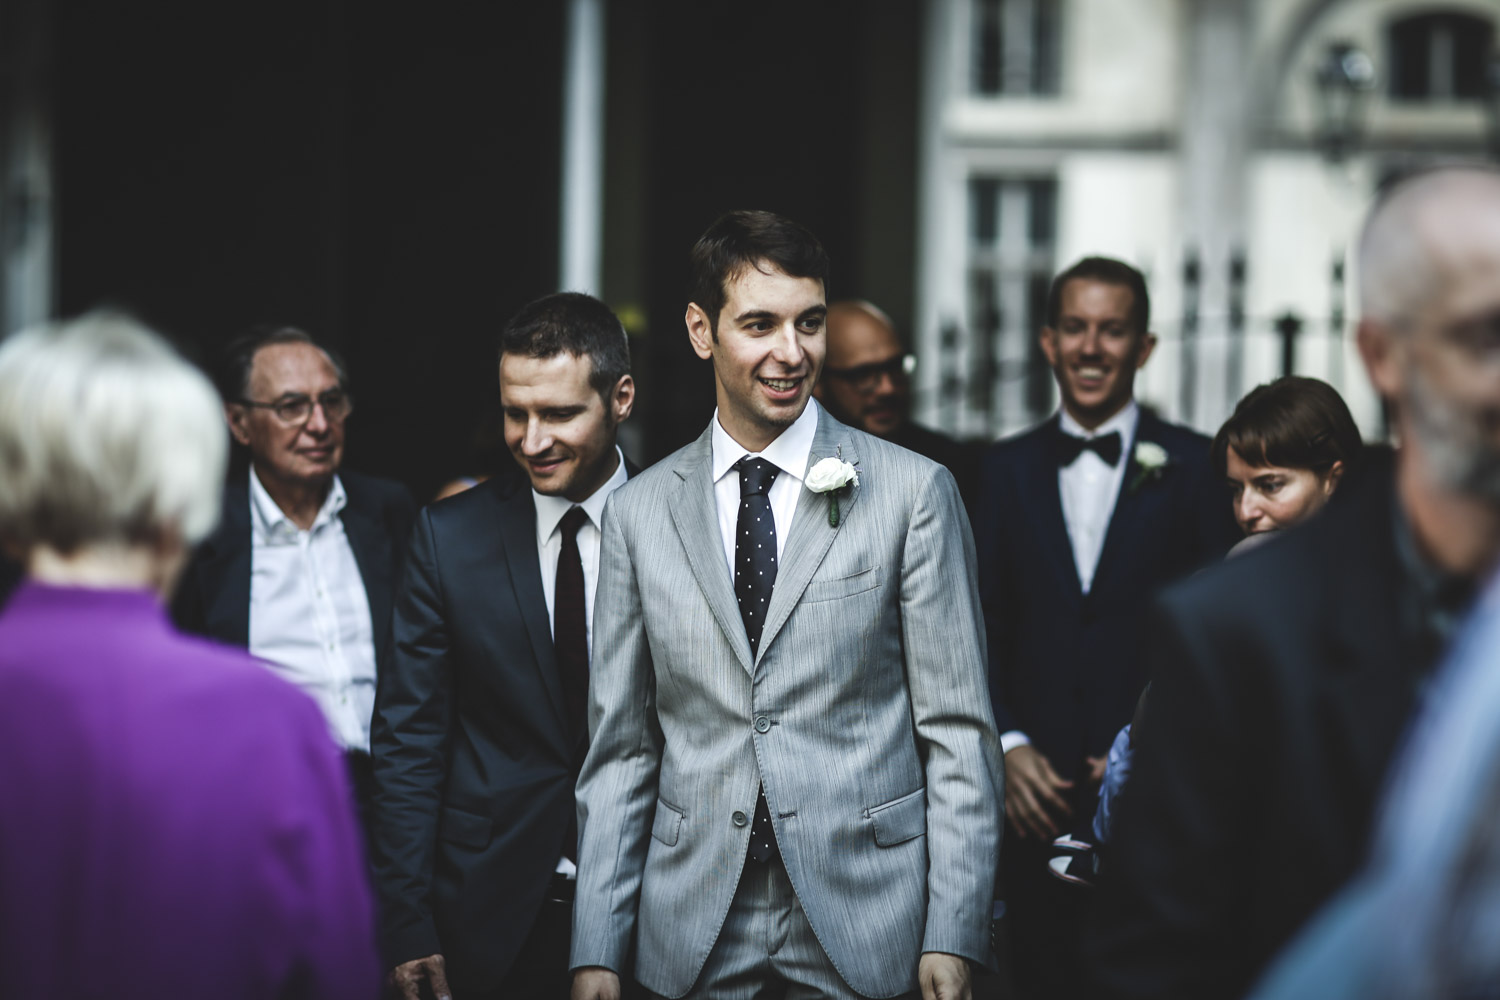 monica-sica_photography_trattoria-revelli_wedding-gay_torino_day_16